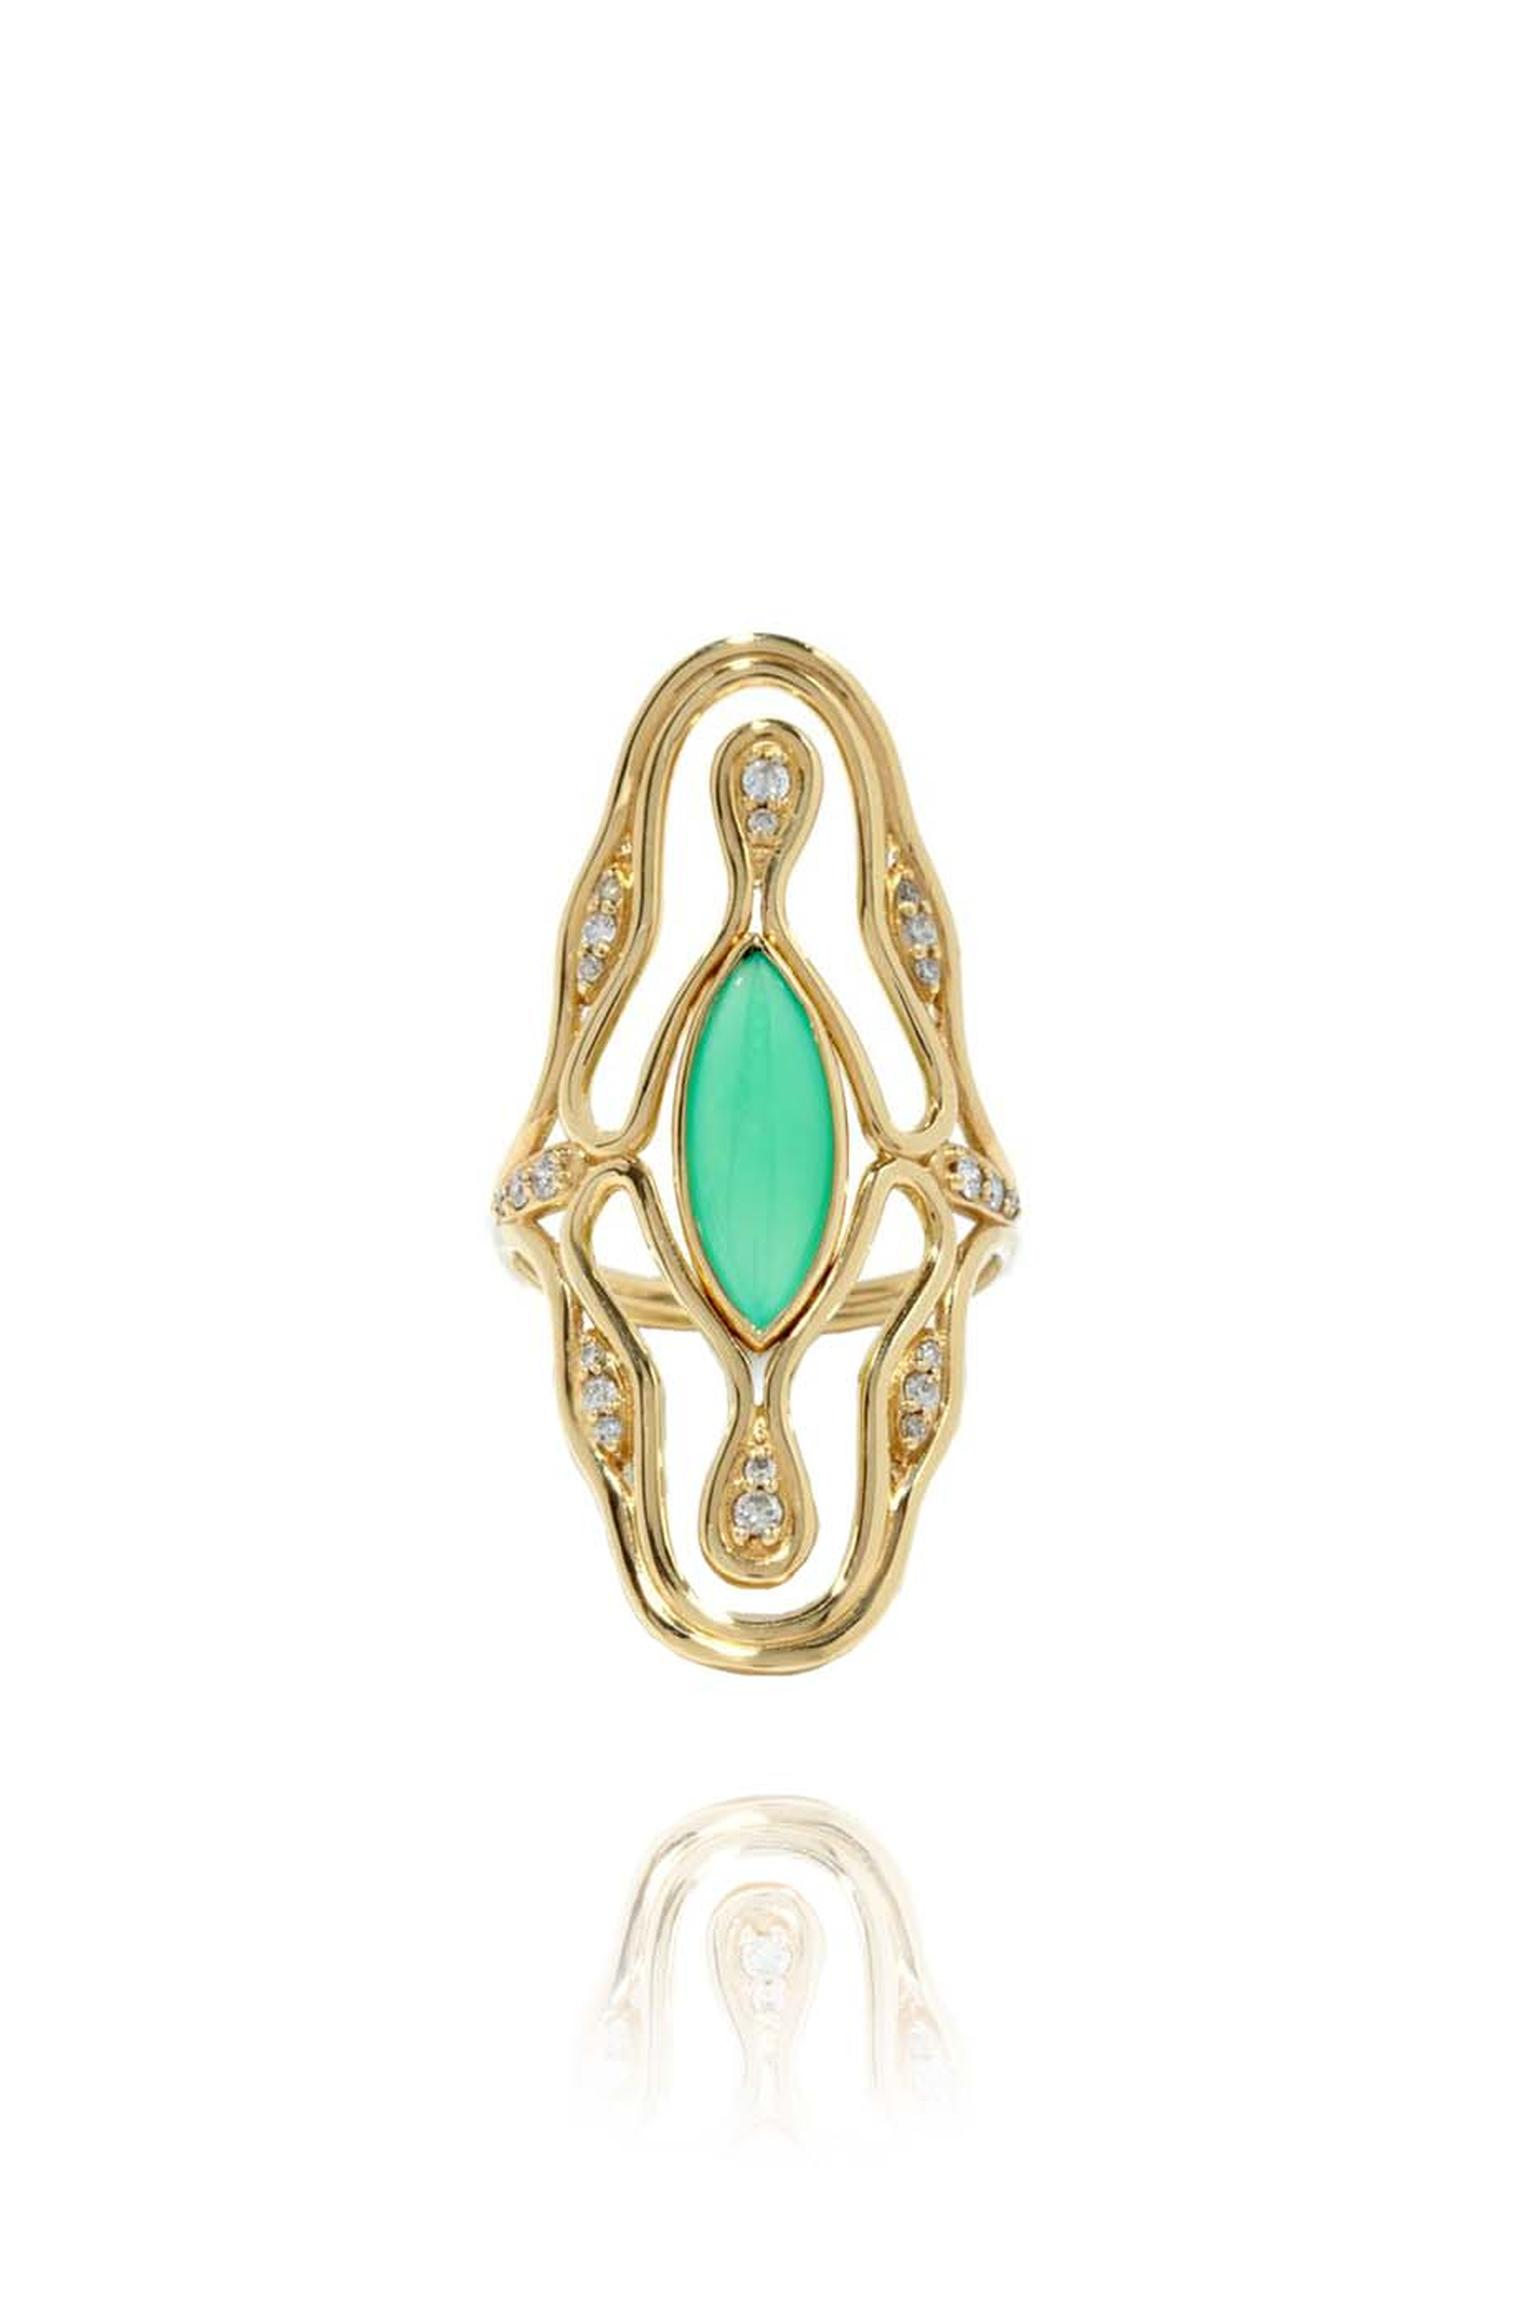 Fernando Jorge Fluid Long yellow gold ring featuring diamonds and chrysoprase.